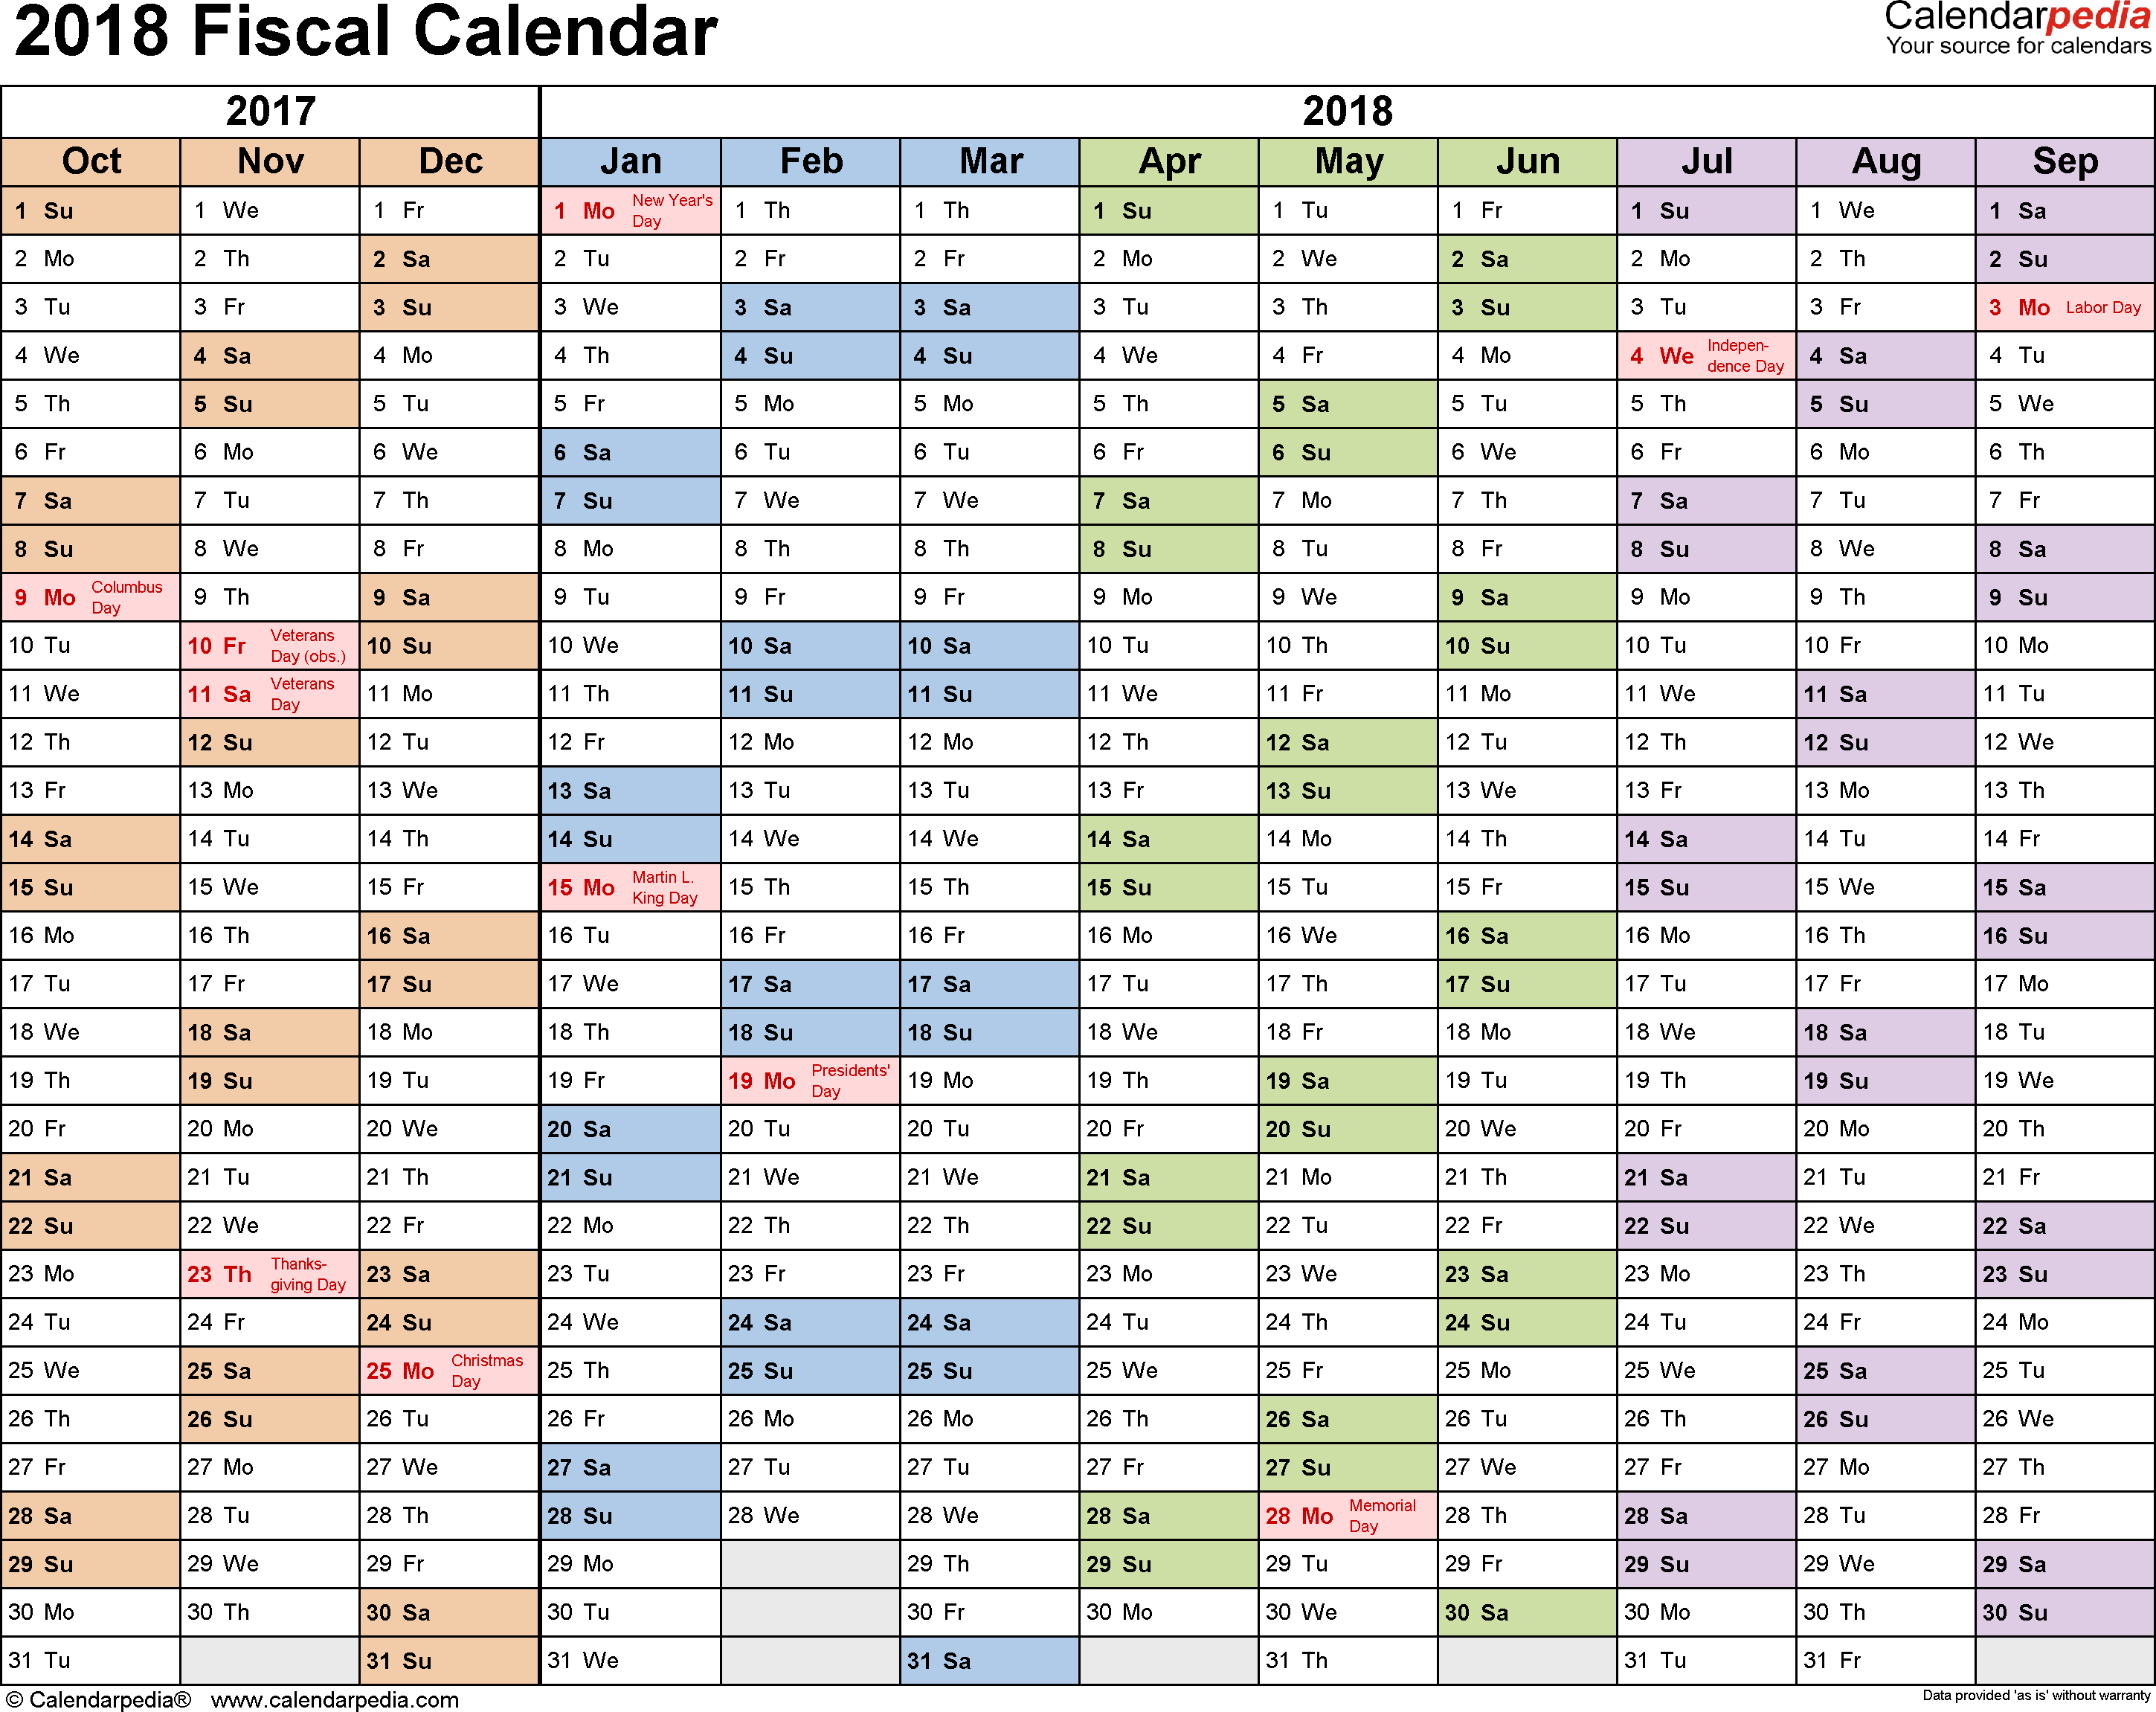 Download Template 1: Fiscal year calendar 2018 for Microsoft Excel (.xlsx file), landscape, 1 page